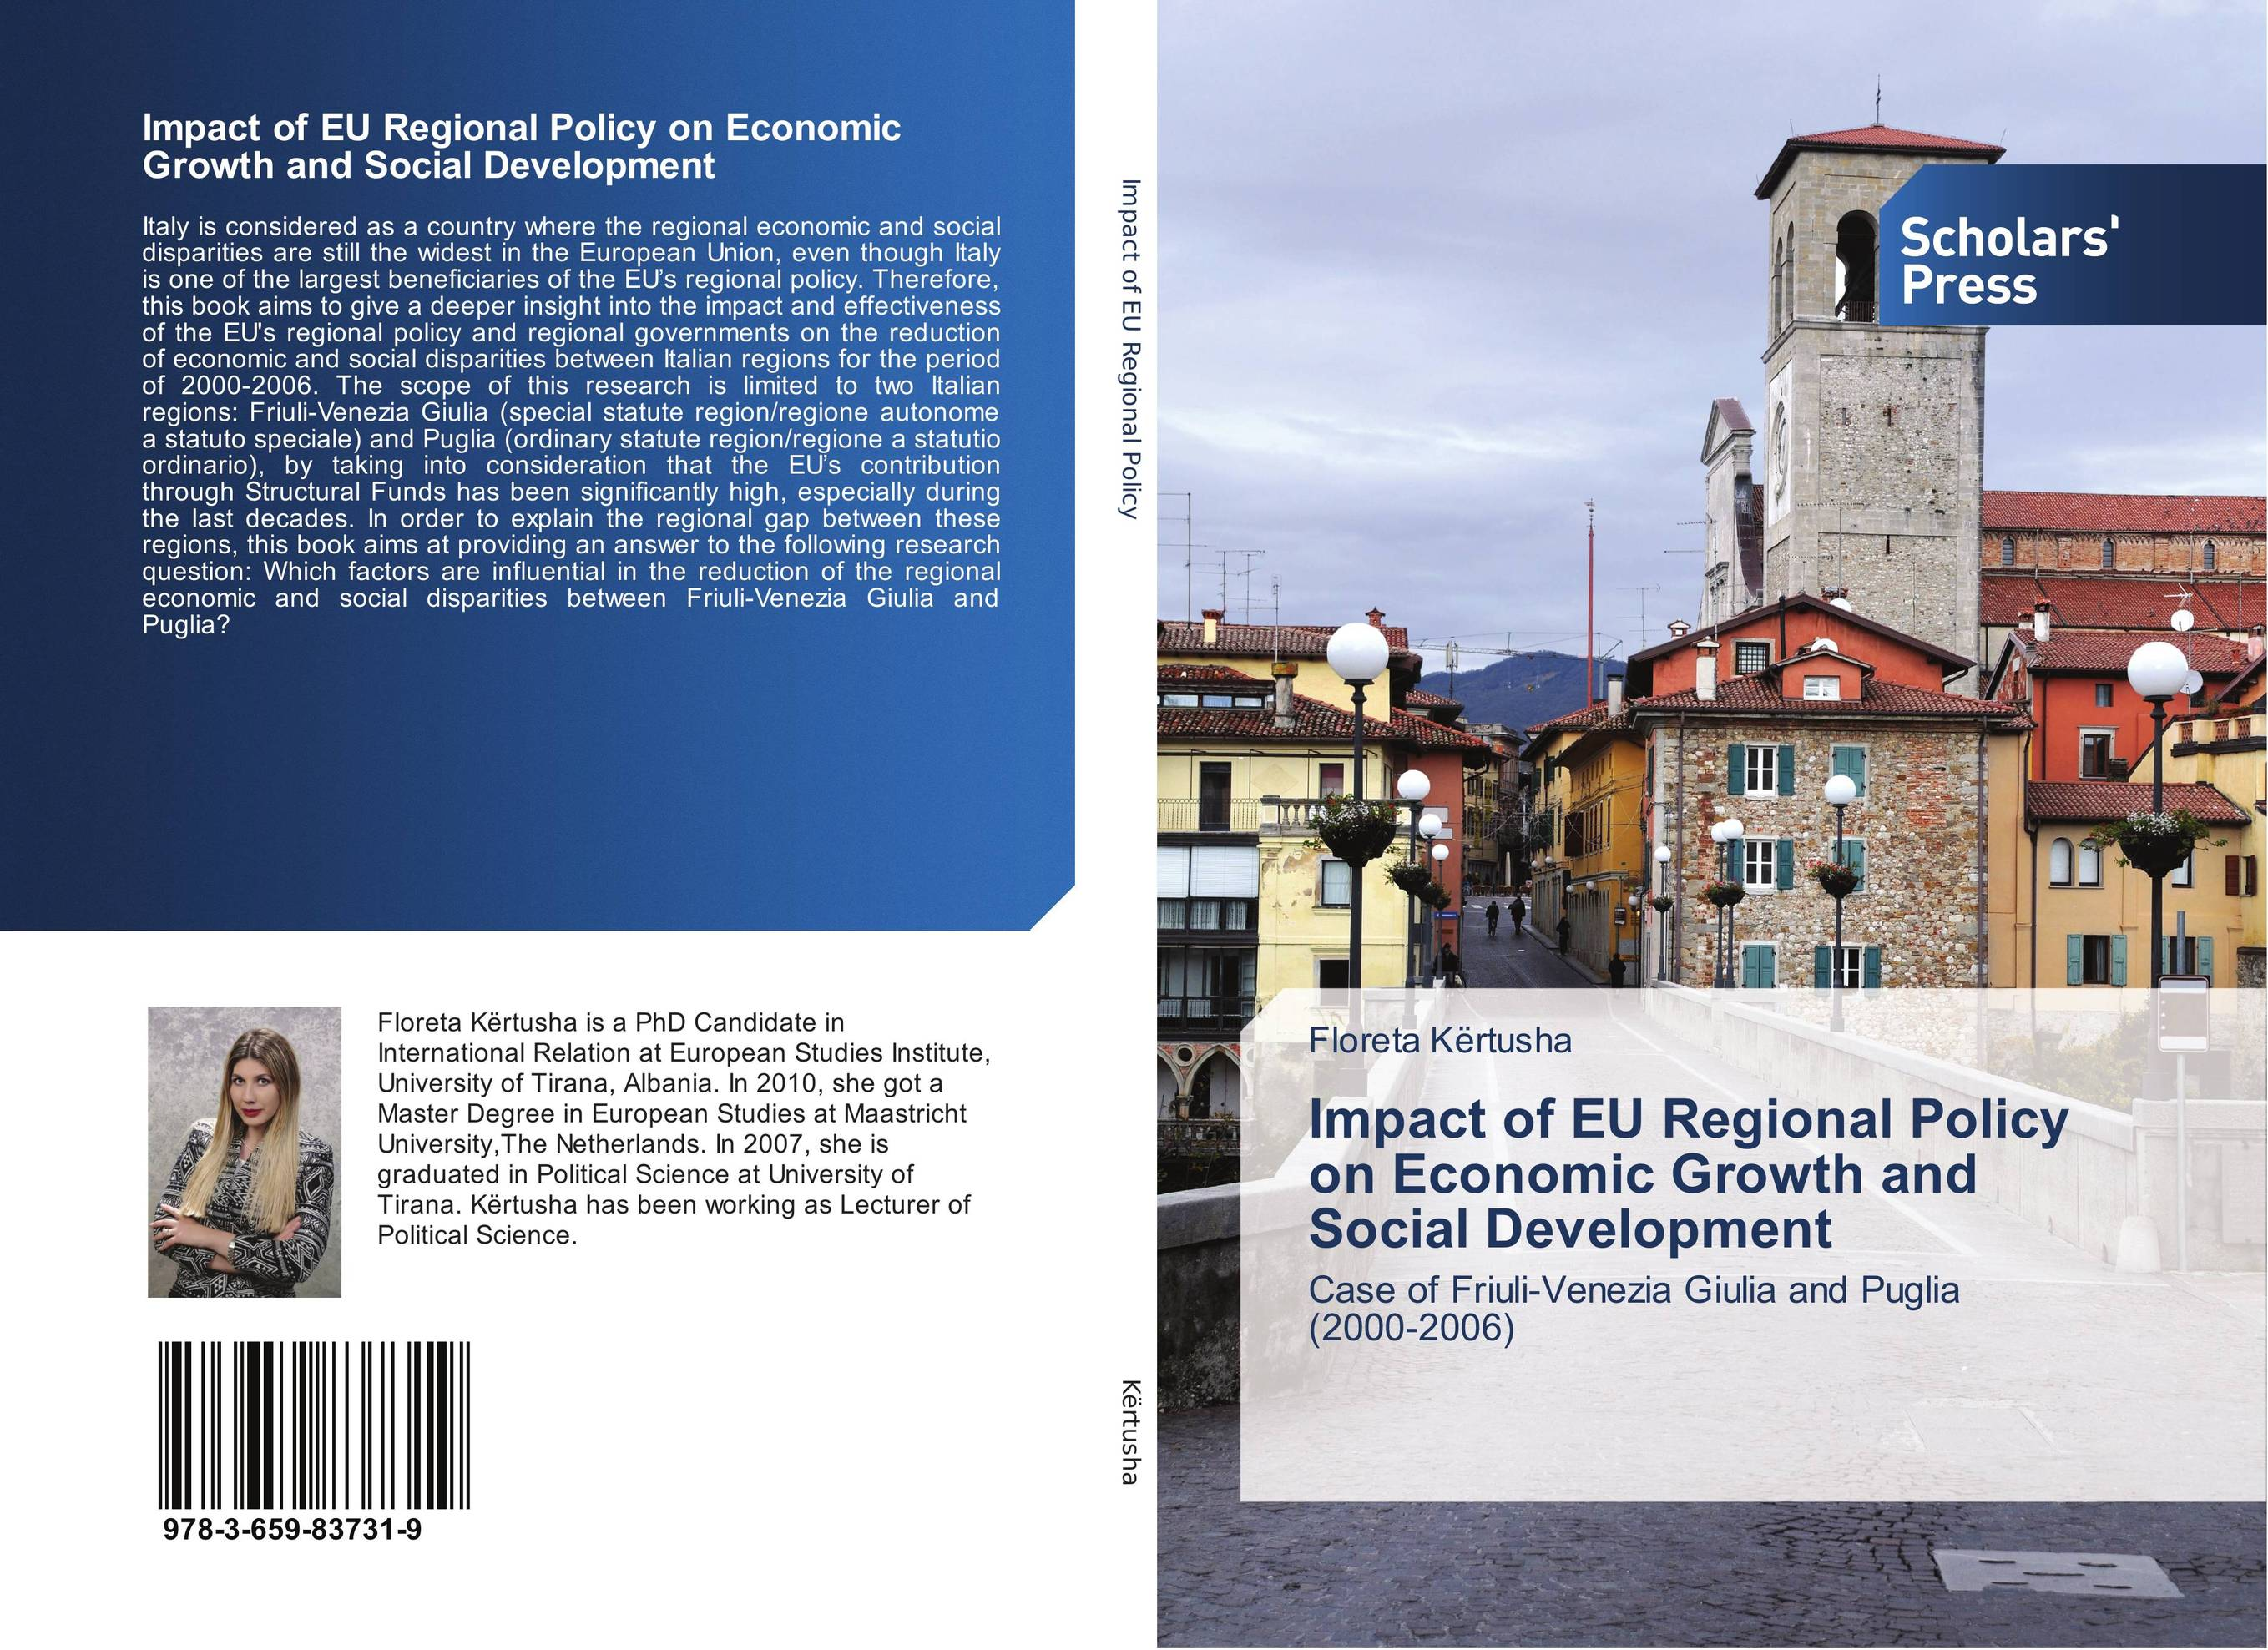 Impact of EU Regional Policy on Economic Growth and Social Development impact of stock market performance indices on economic growth